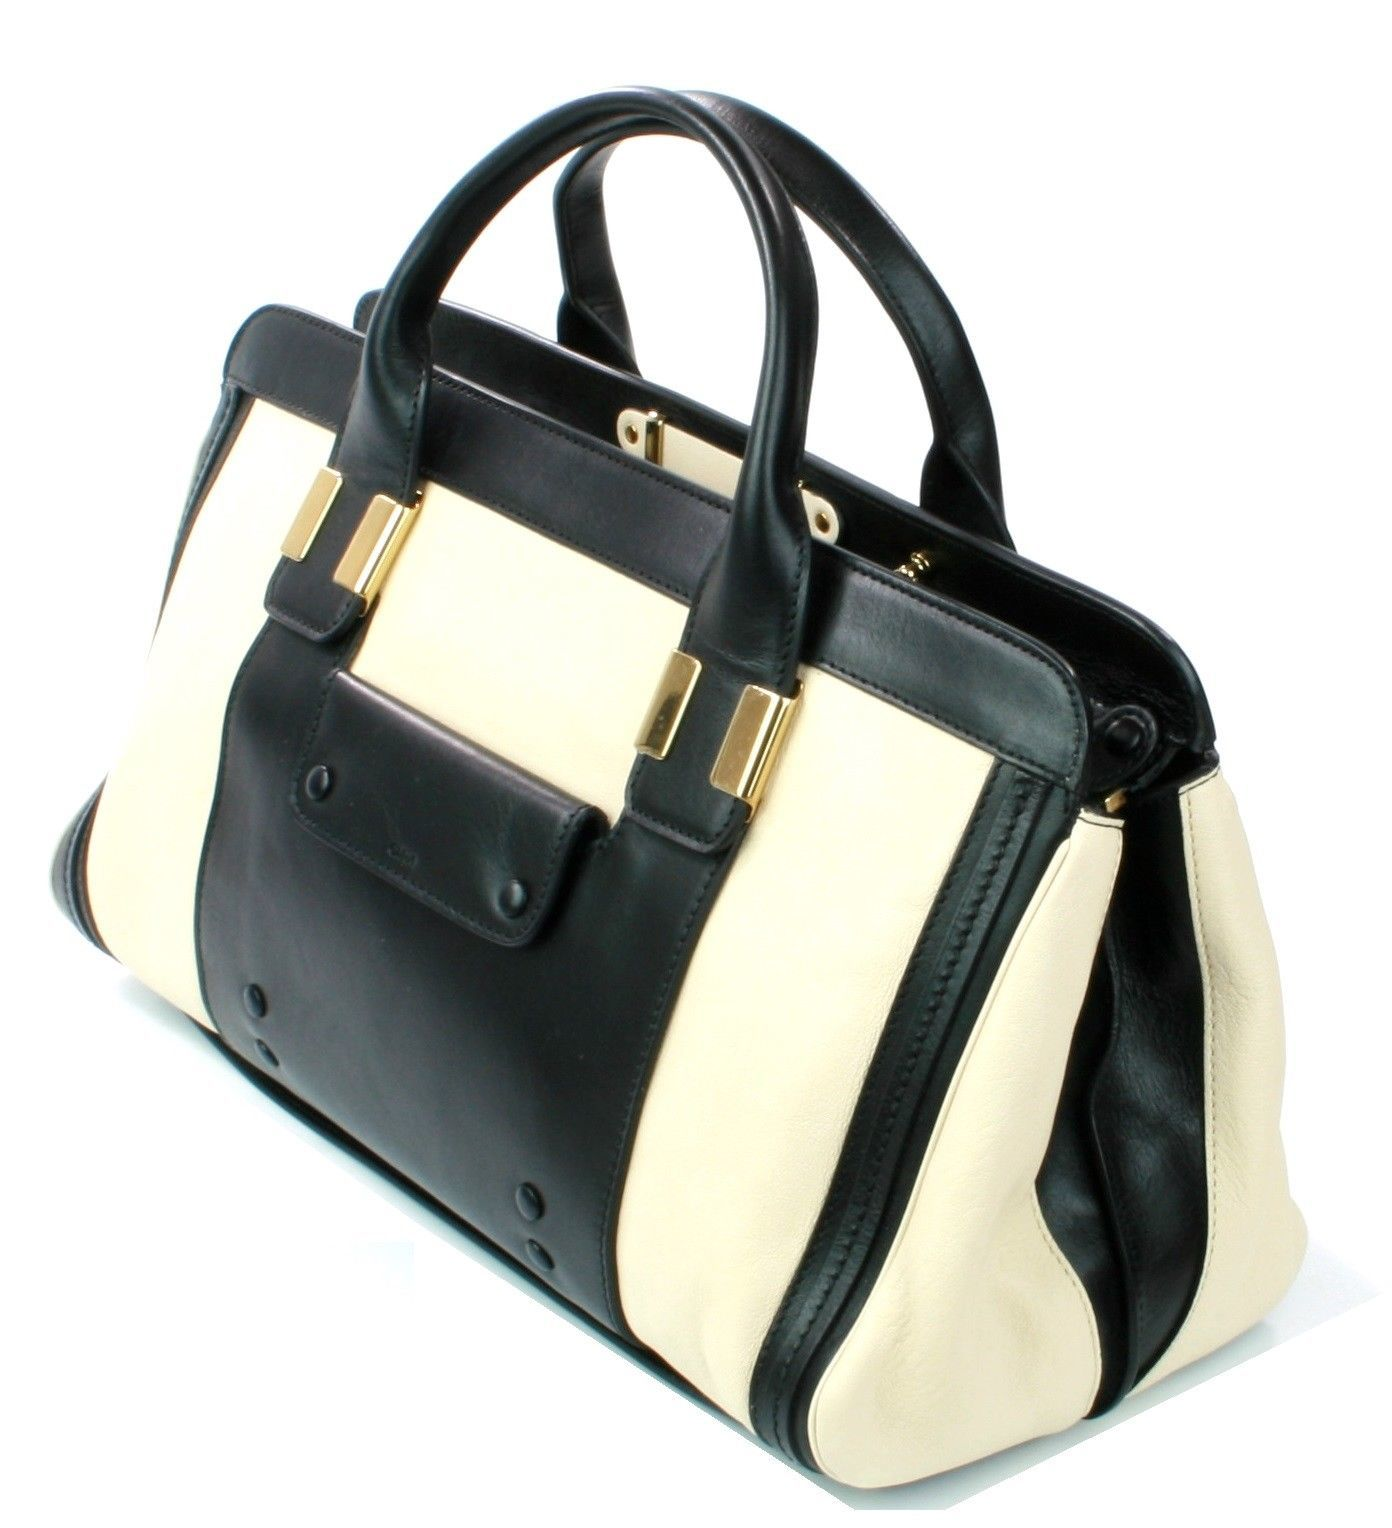 Chloe Alice Husky White Black Leather Tote Bag Medium Sized Handbag RRP £1,240